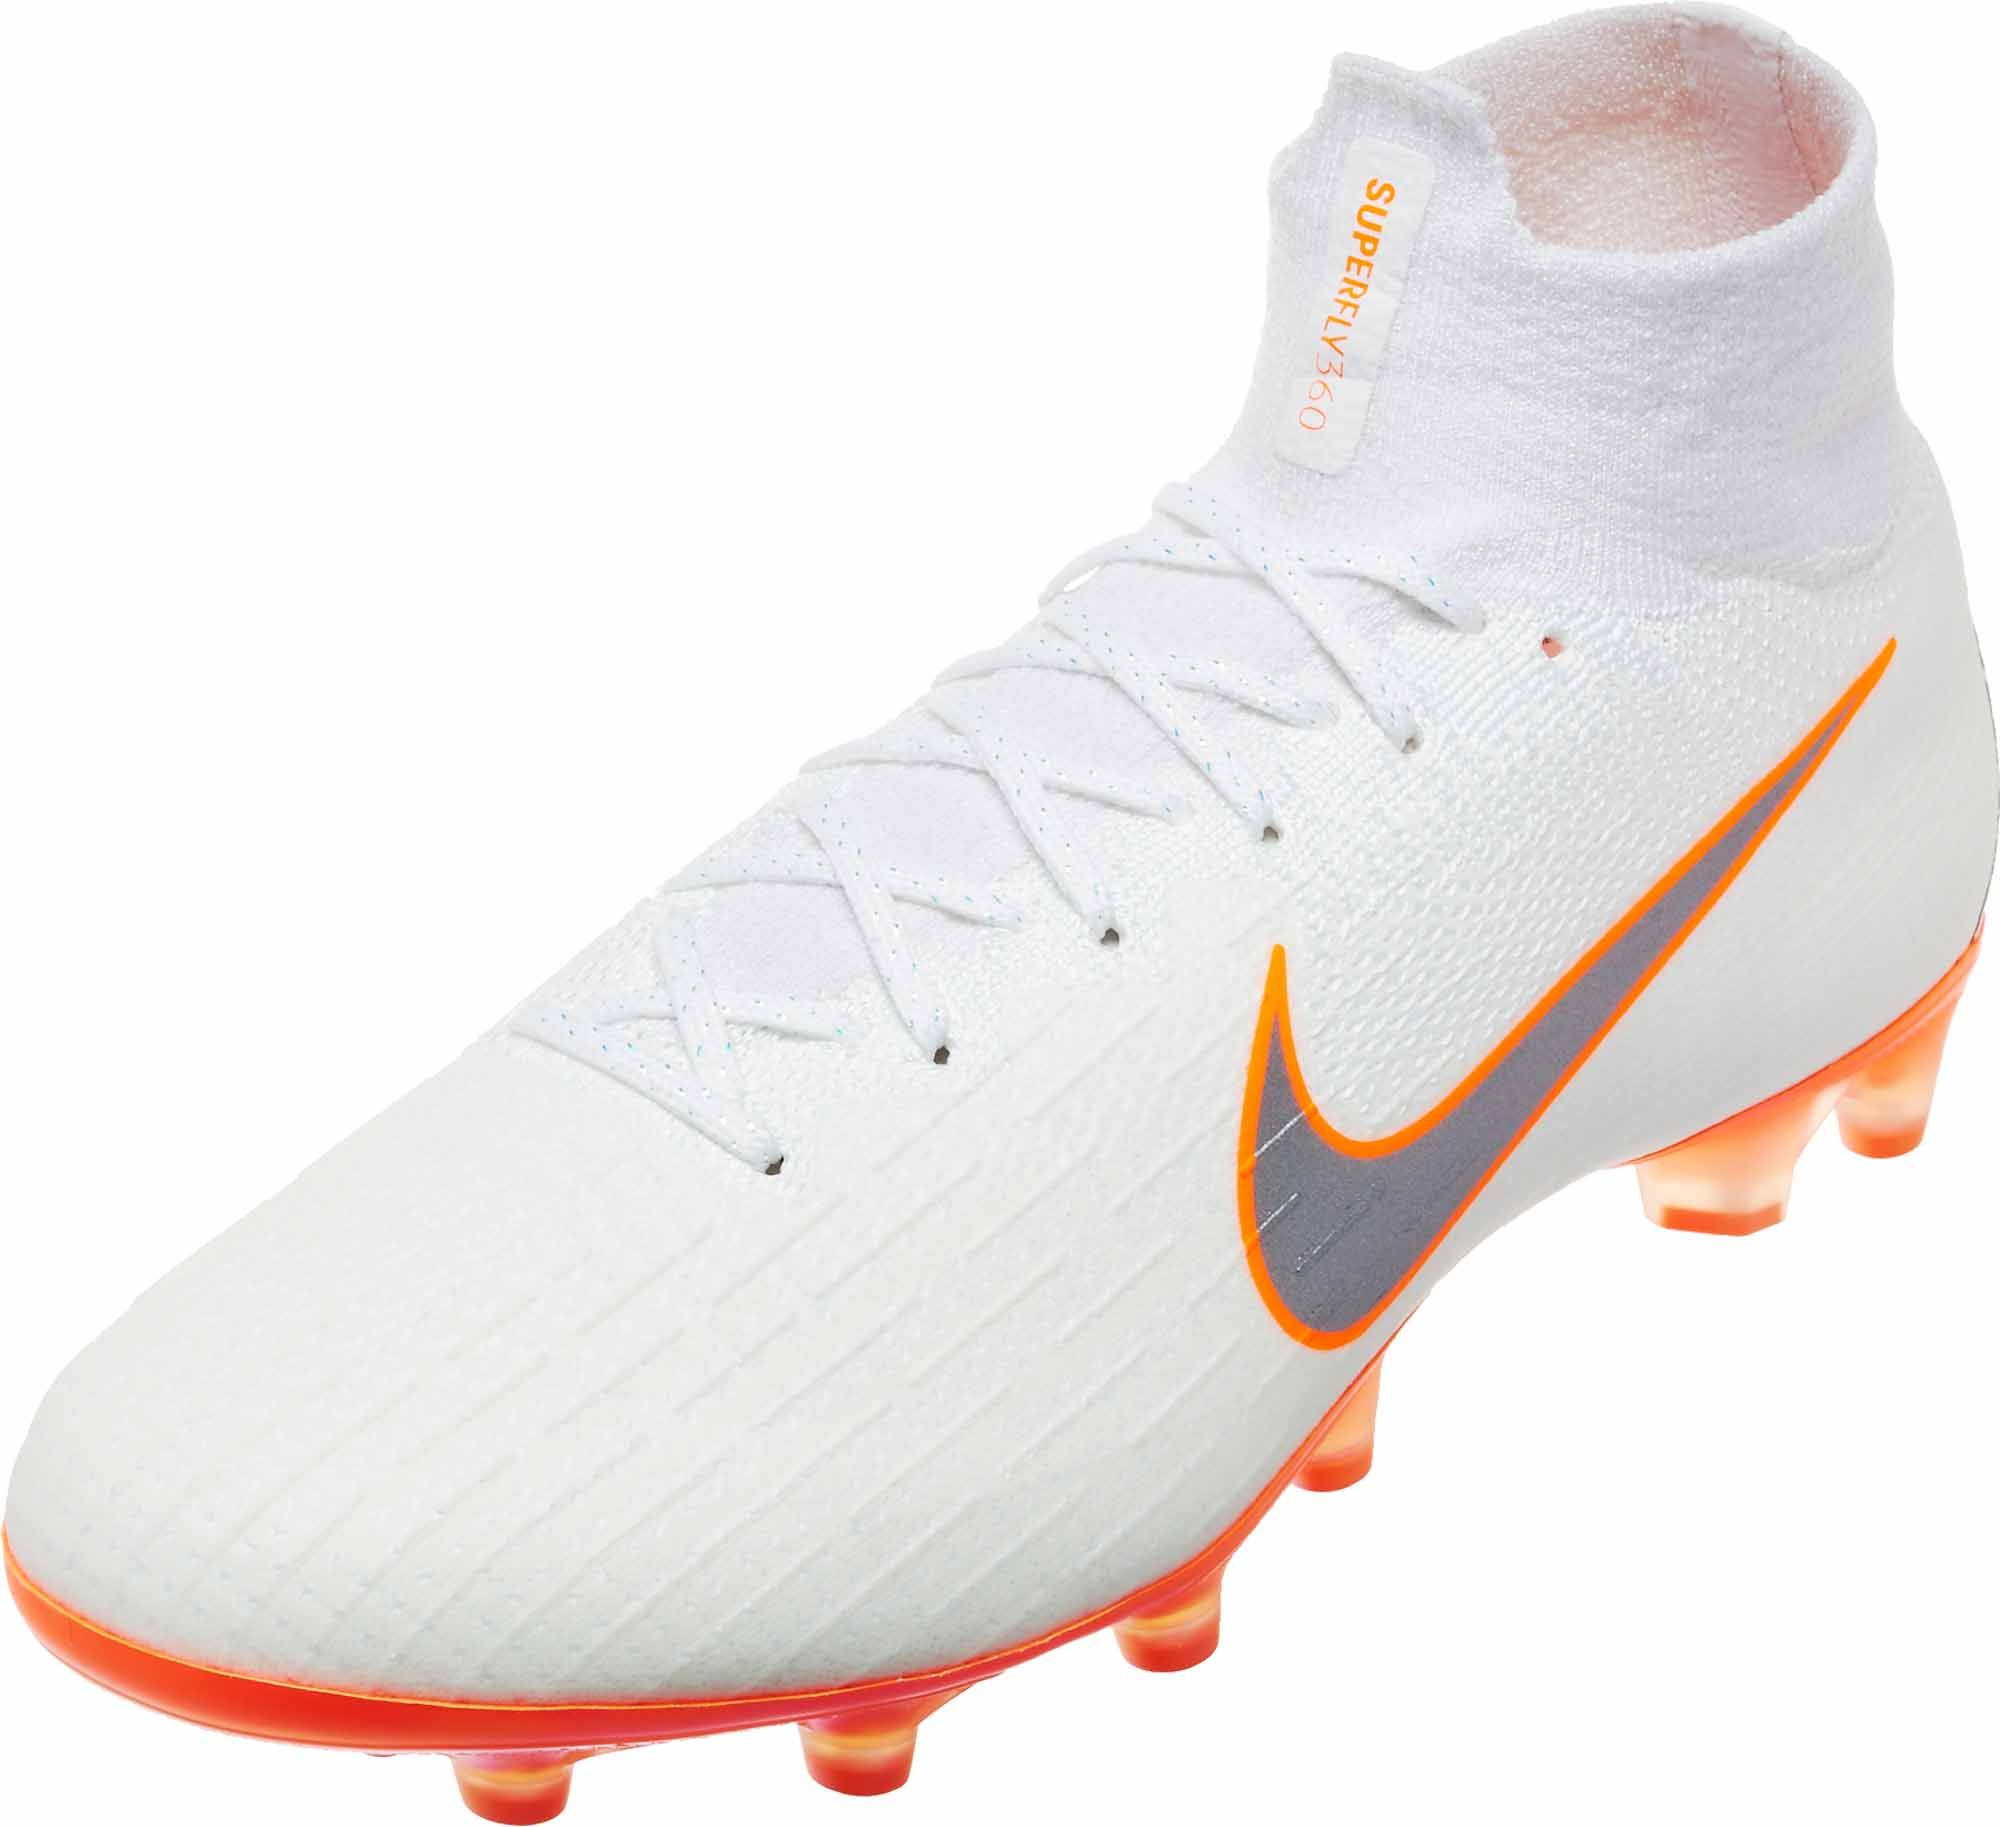 separation shoes 3e617 c4649 Nike Mercurial Superfly 6 Elite AG – Pro – White/Total ...